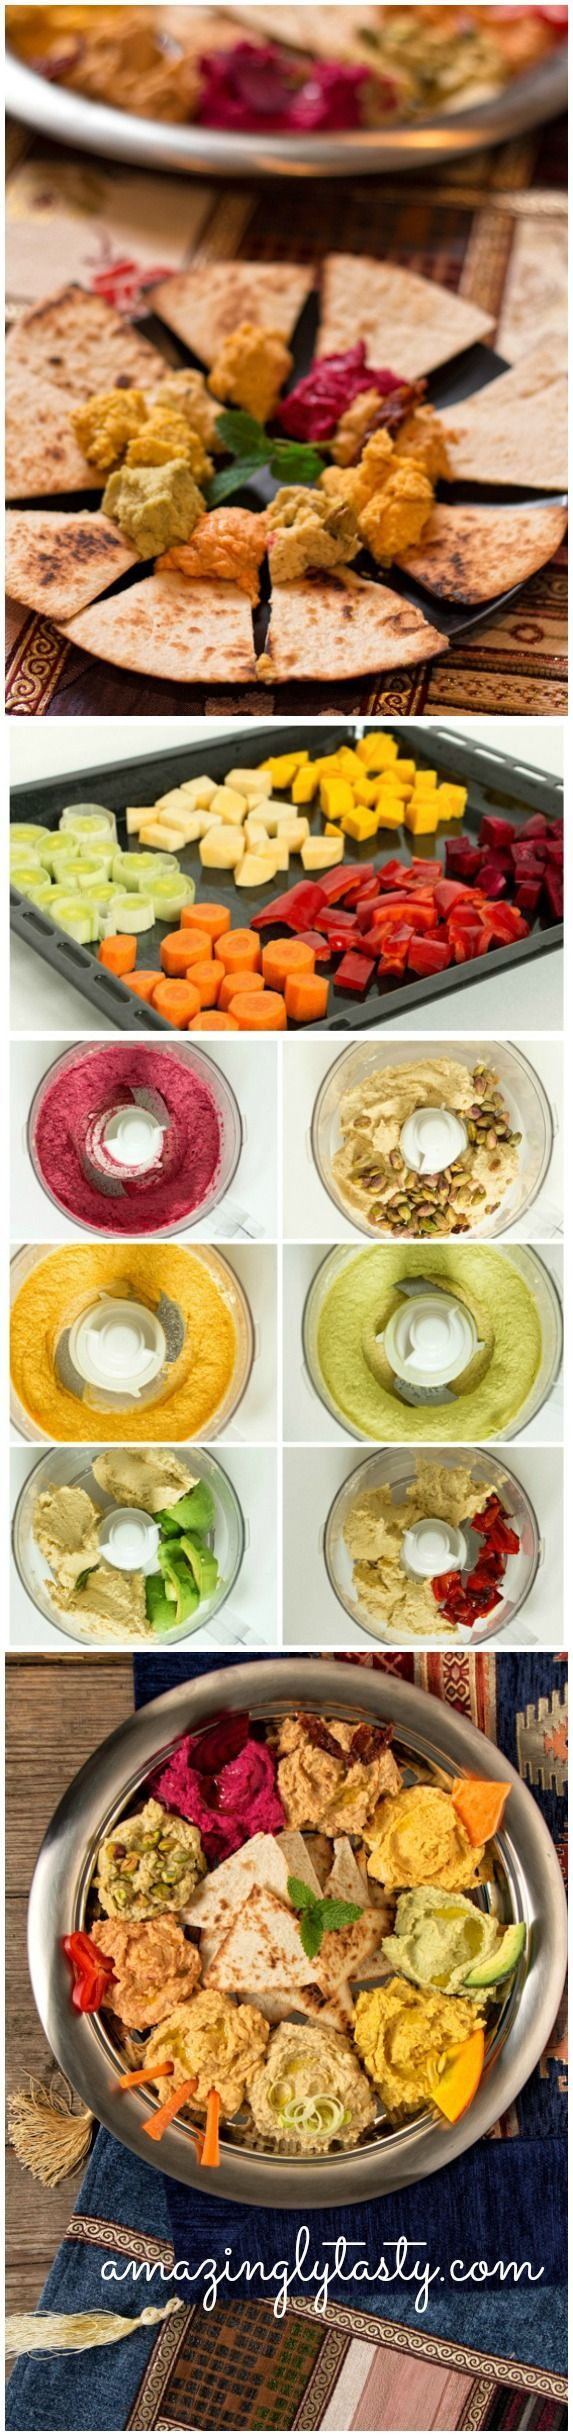 9 Hummus Variations including beetroot, leek, avocado, sweet potato, pistachio, sun dried tomato, carrot and bell pepper hummus.